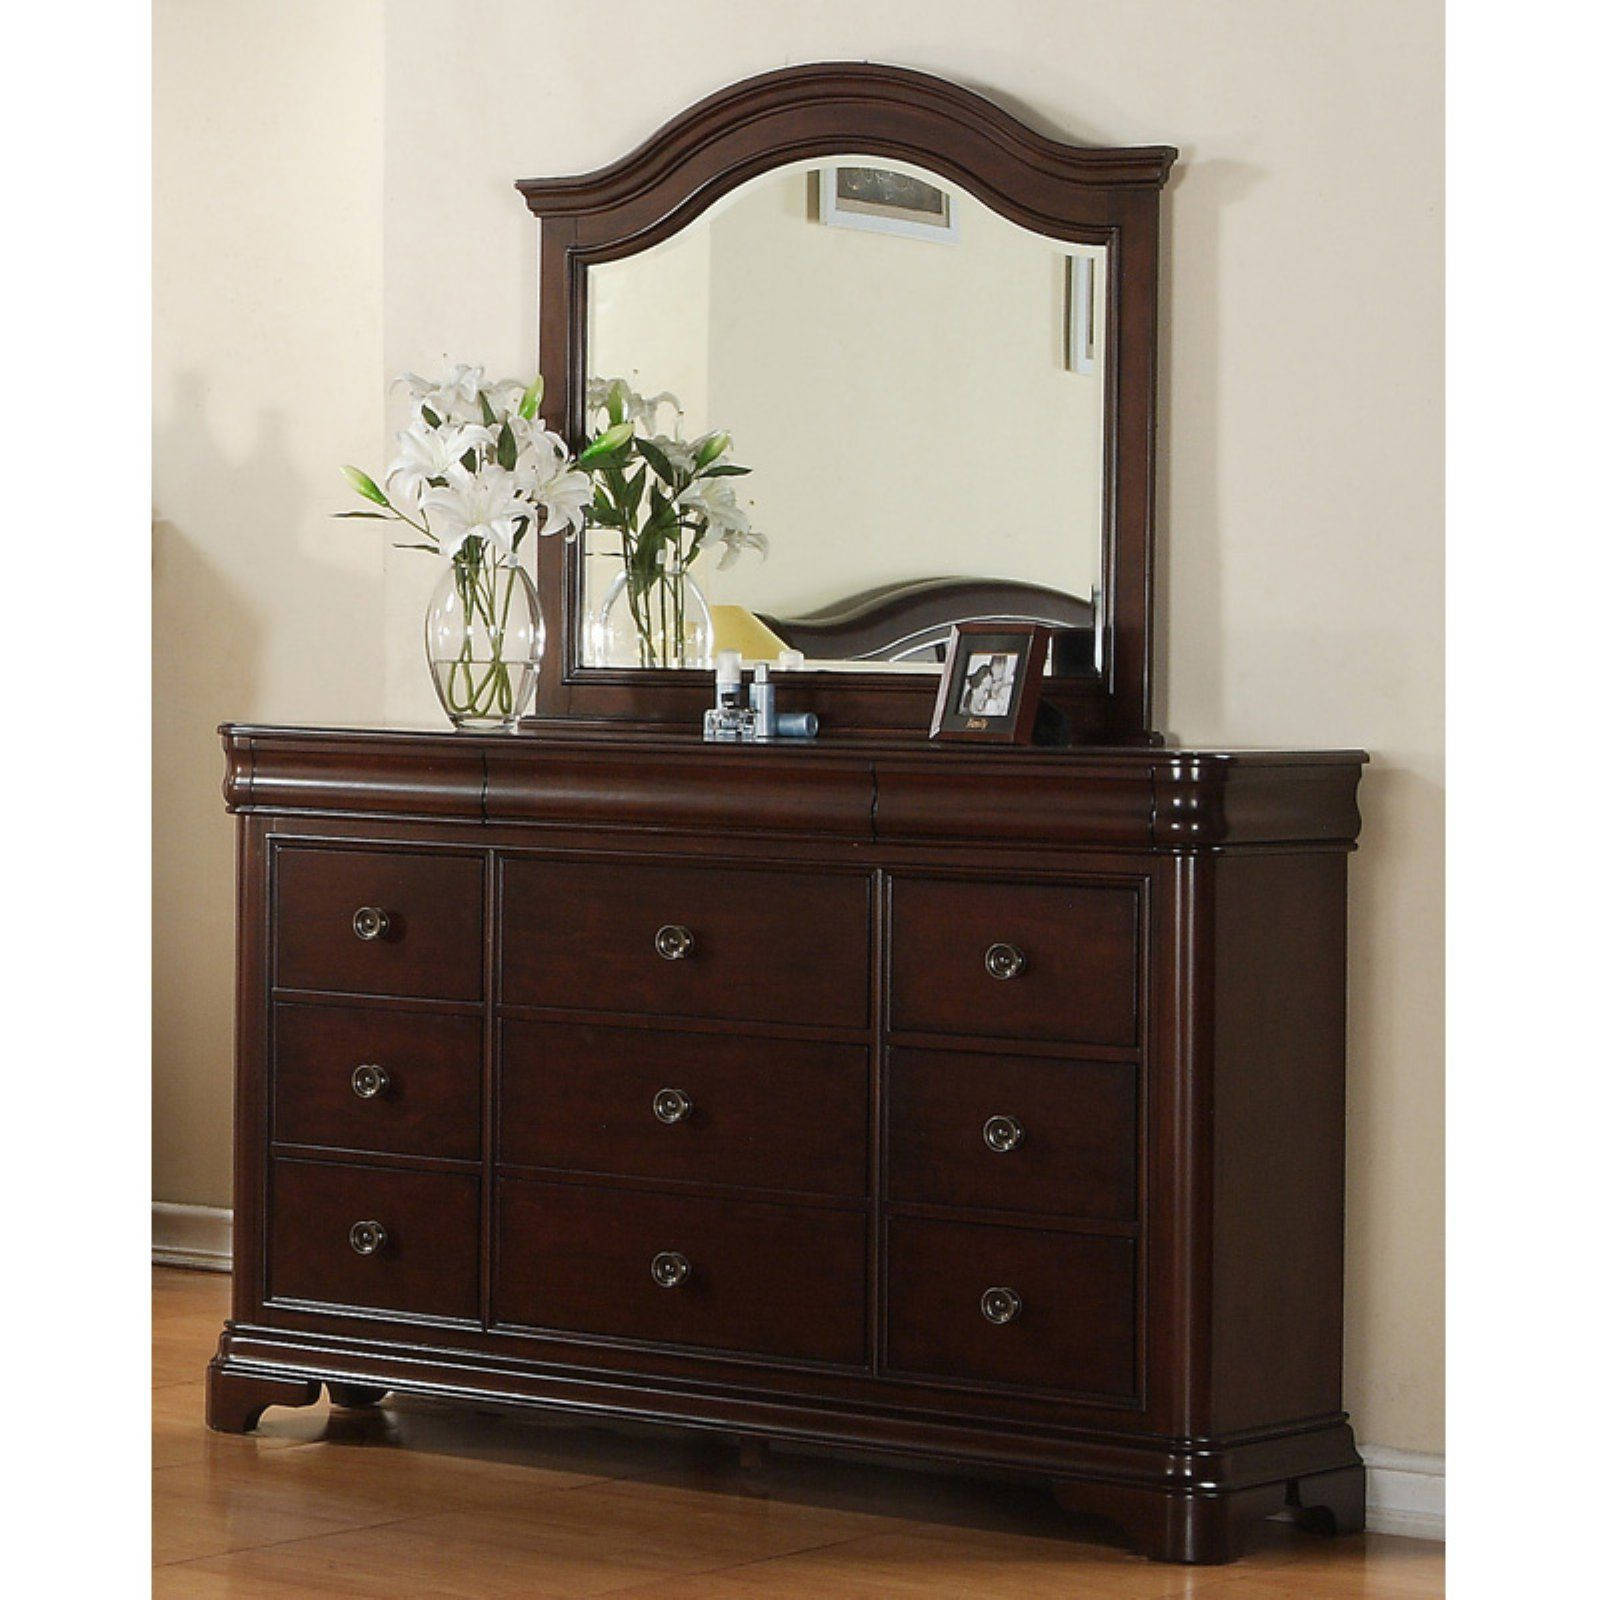 Picket house furnishings cameron 9 drawer dresser traditional cherry